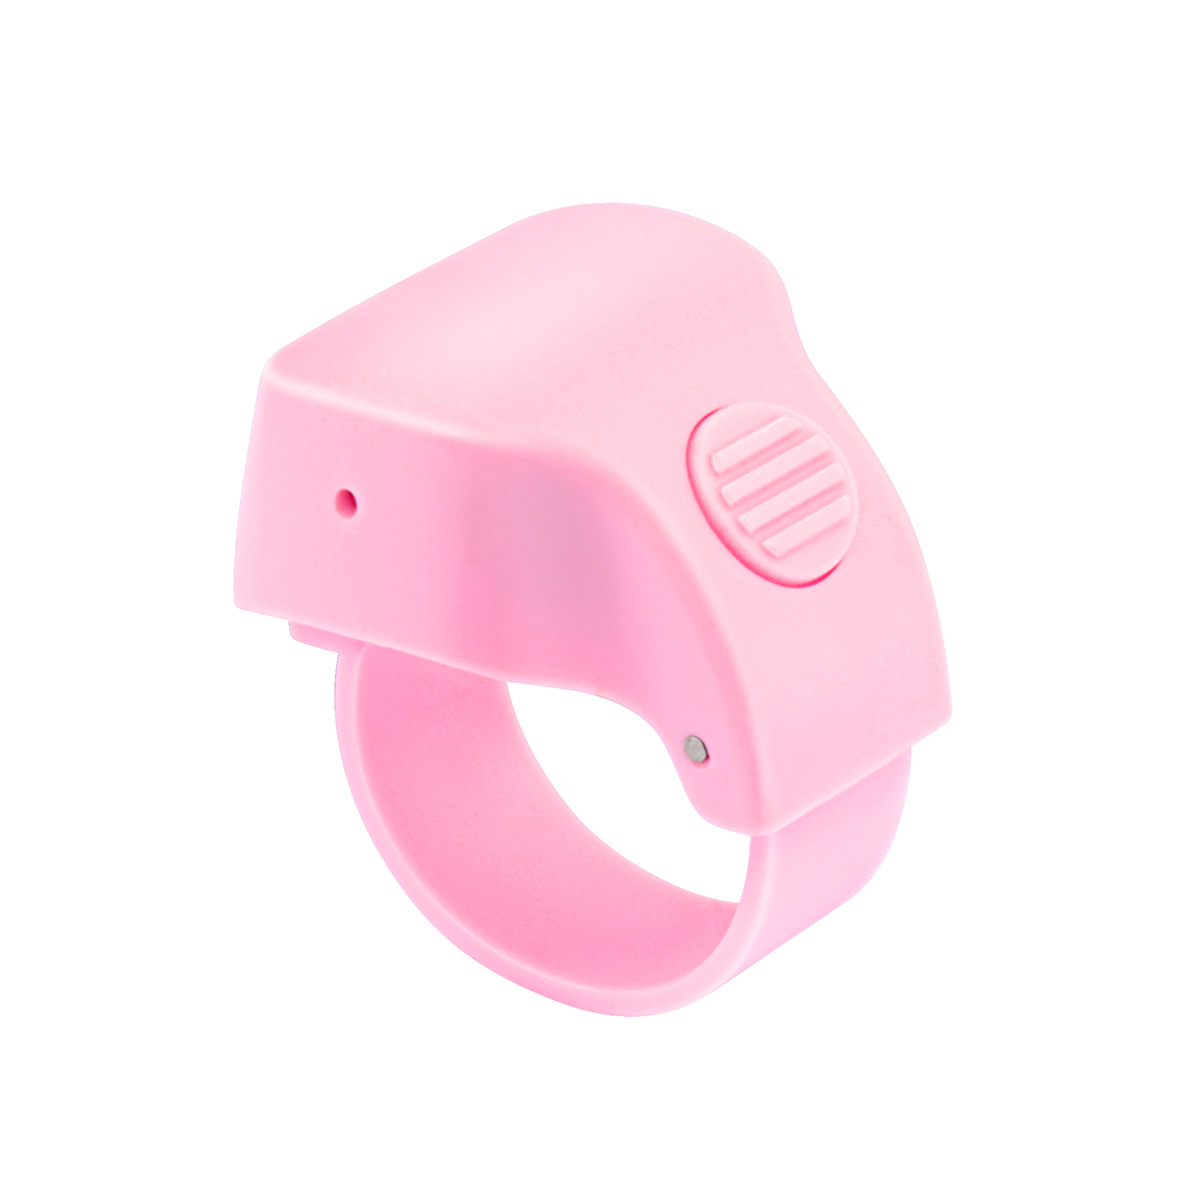 R10 Bluetooth Control Ring Selfie Lithium Battery Rechargeable Free-hands Ring Pink